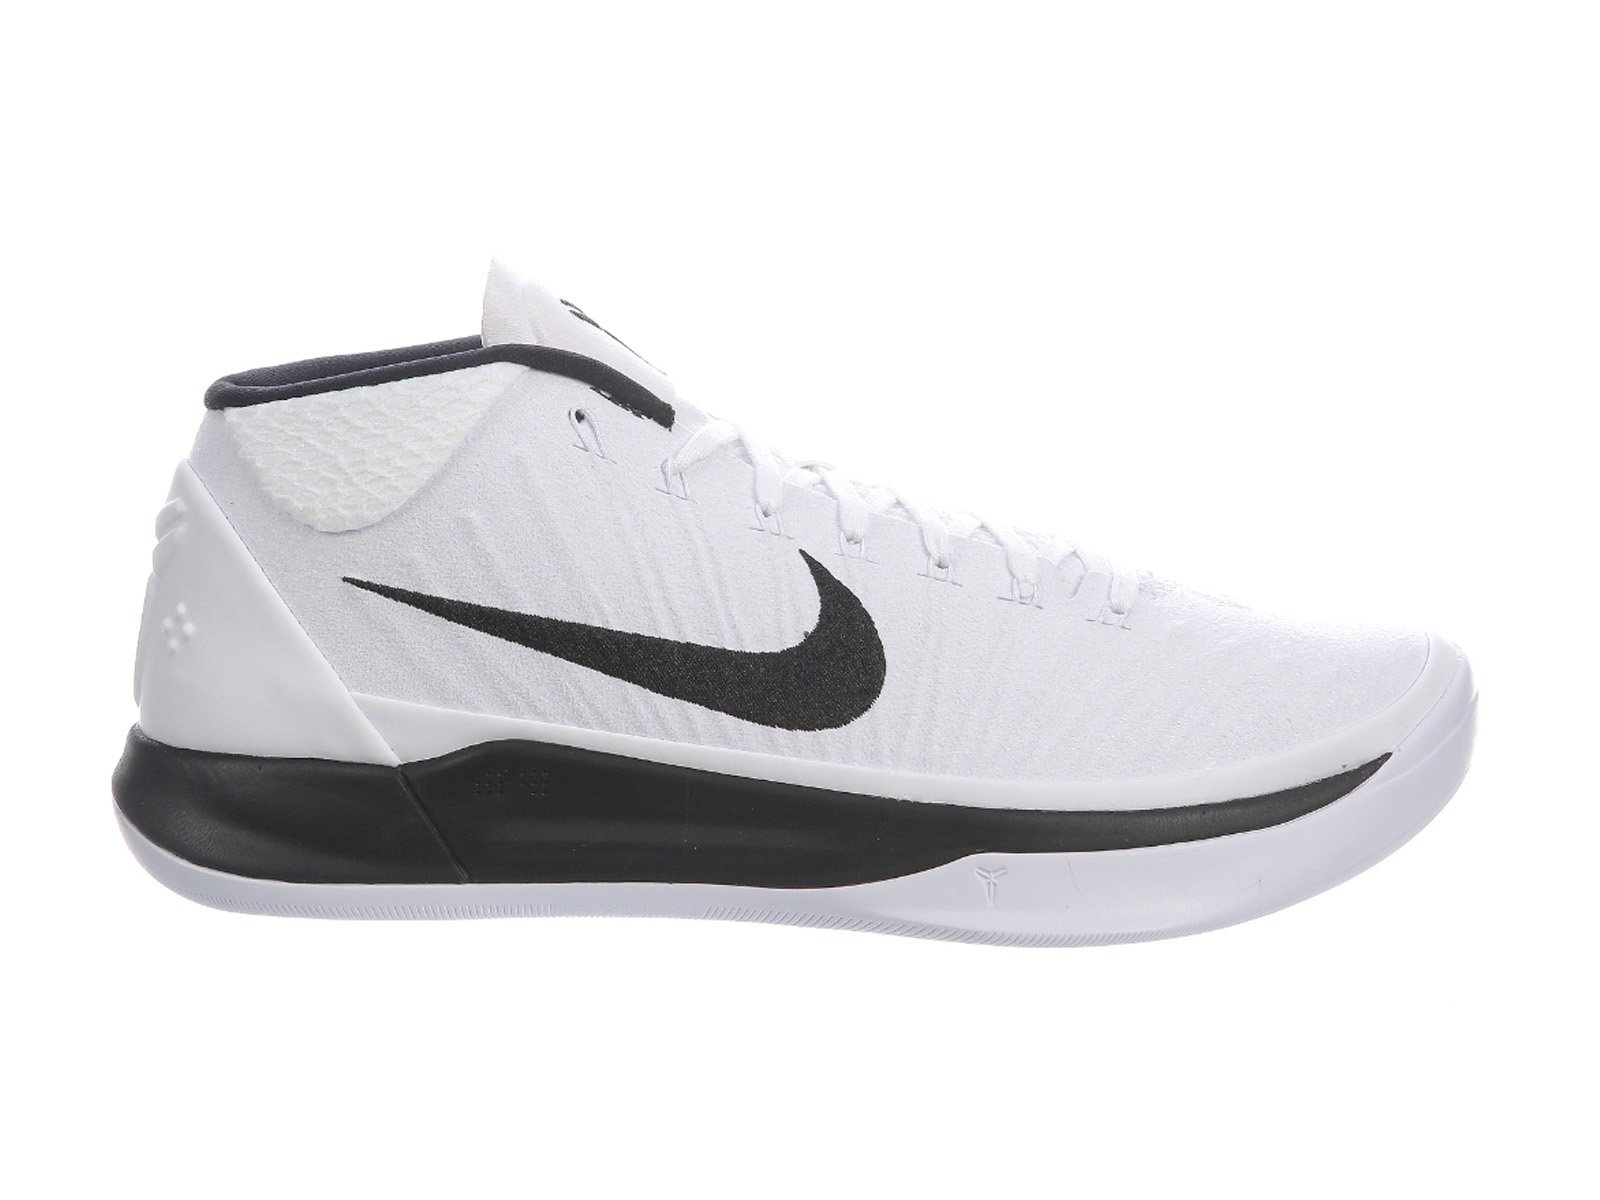 e81fb14f5a4 Galleon - Nike Men s Kobe A.D. White Black Nylon Basketball Shoes 13.5 D(M)  US